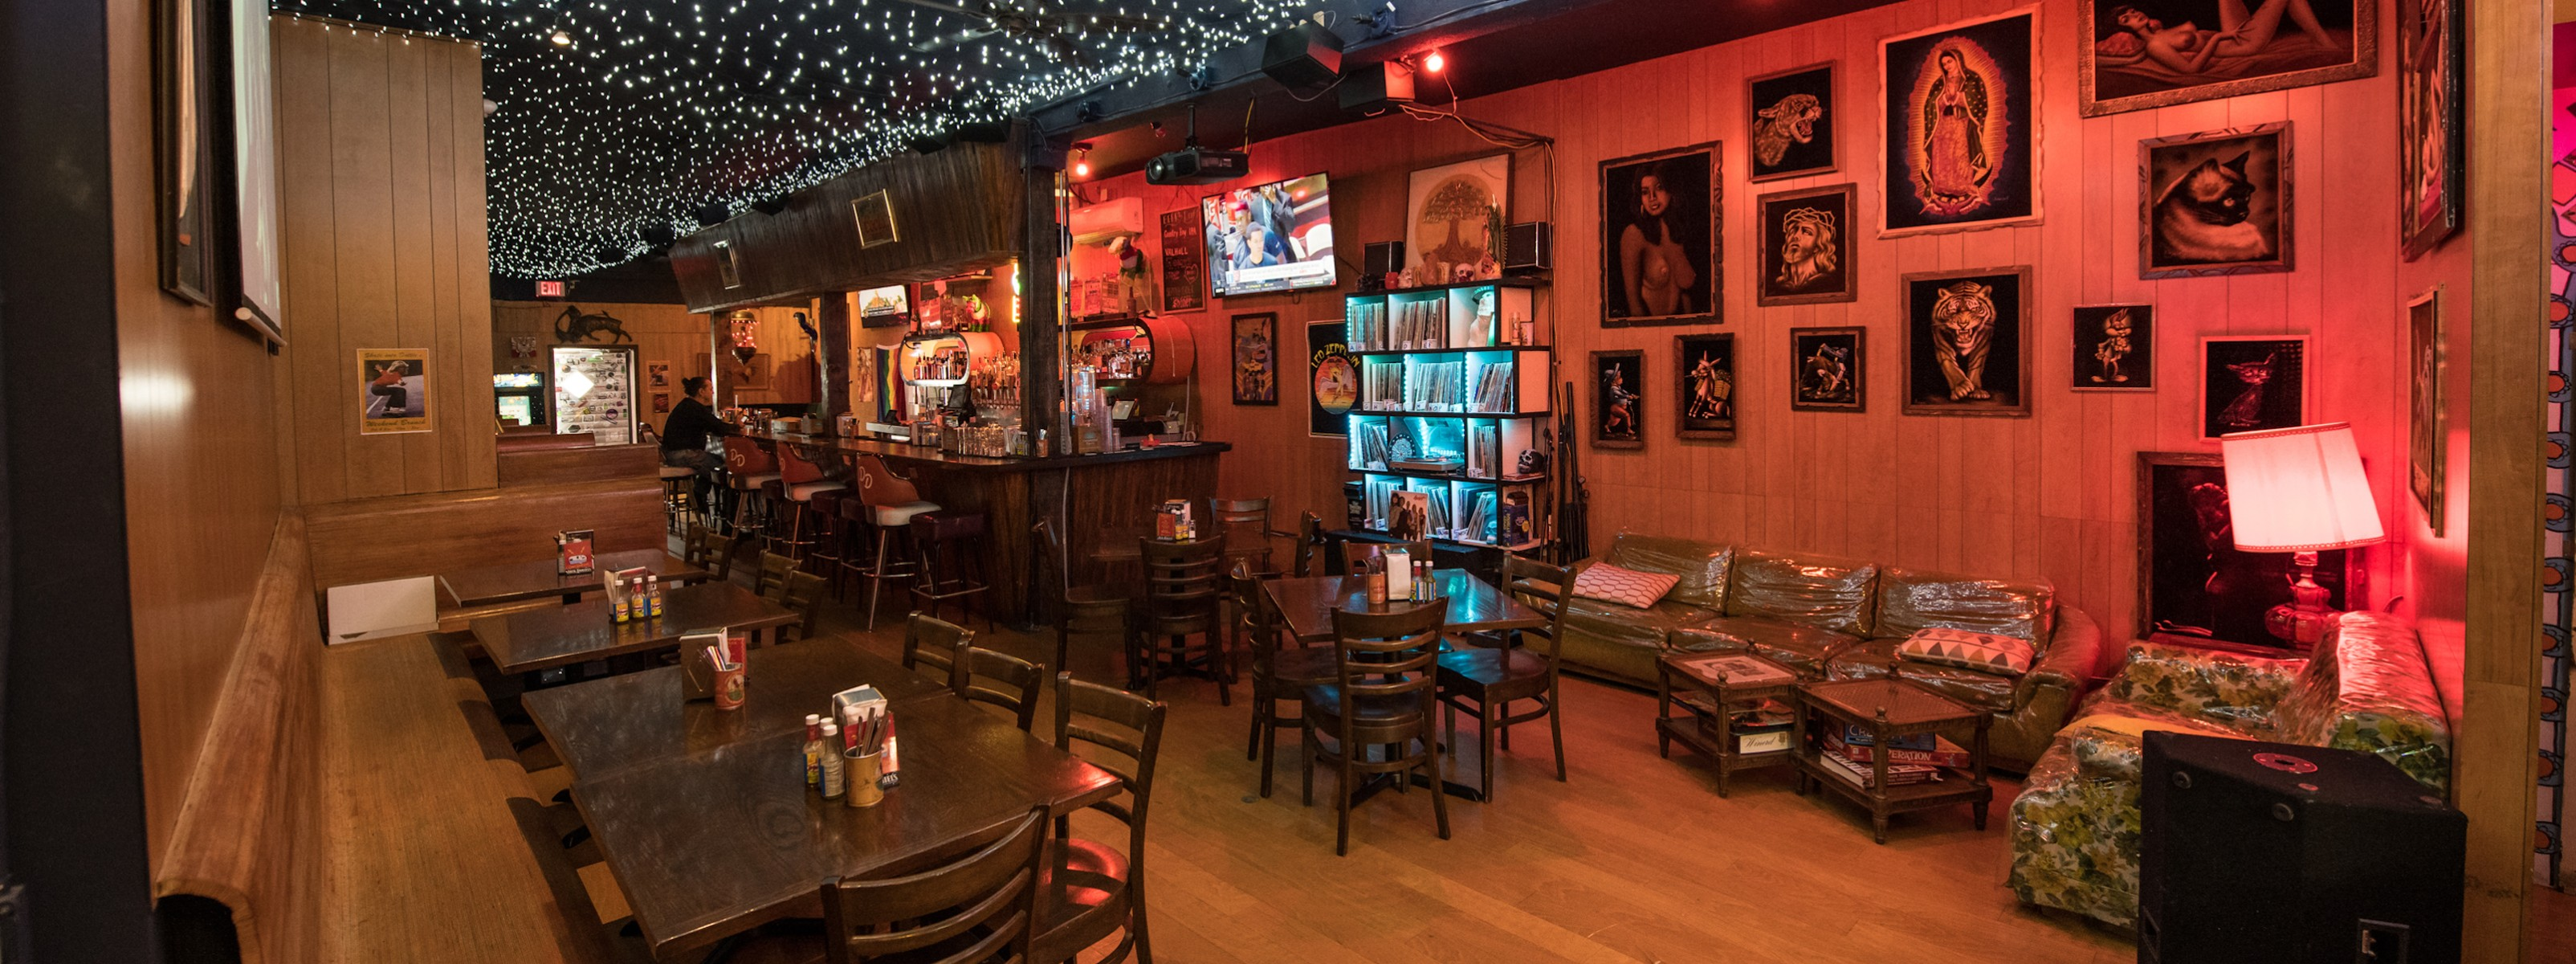 11 Dive Bars With Great Food - Seattle - The Infatuation